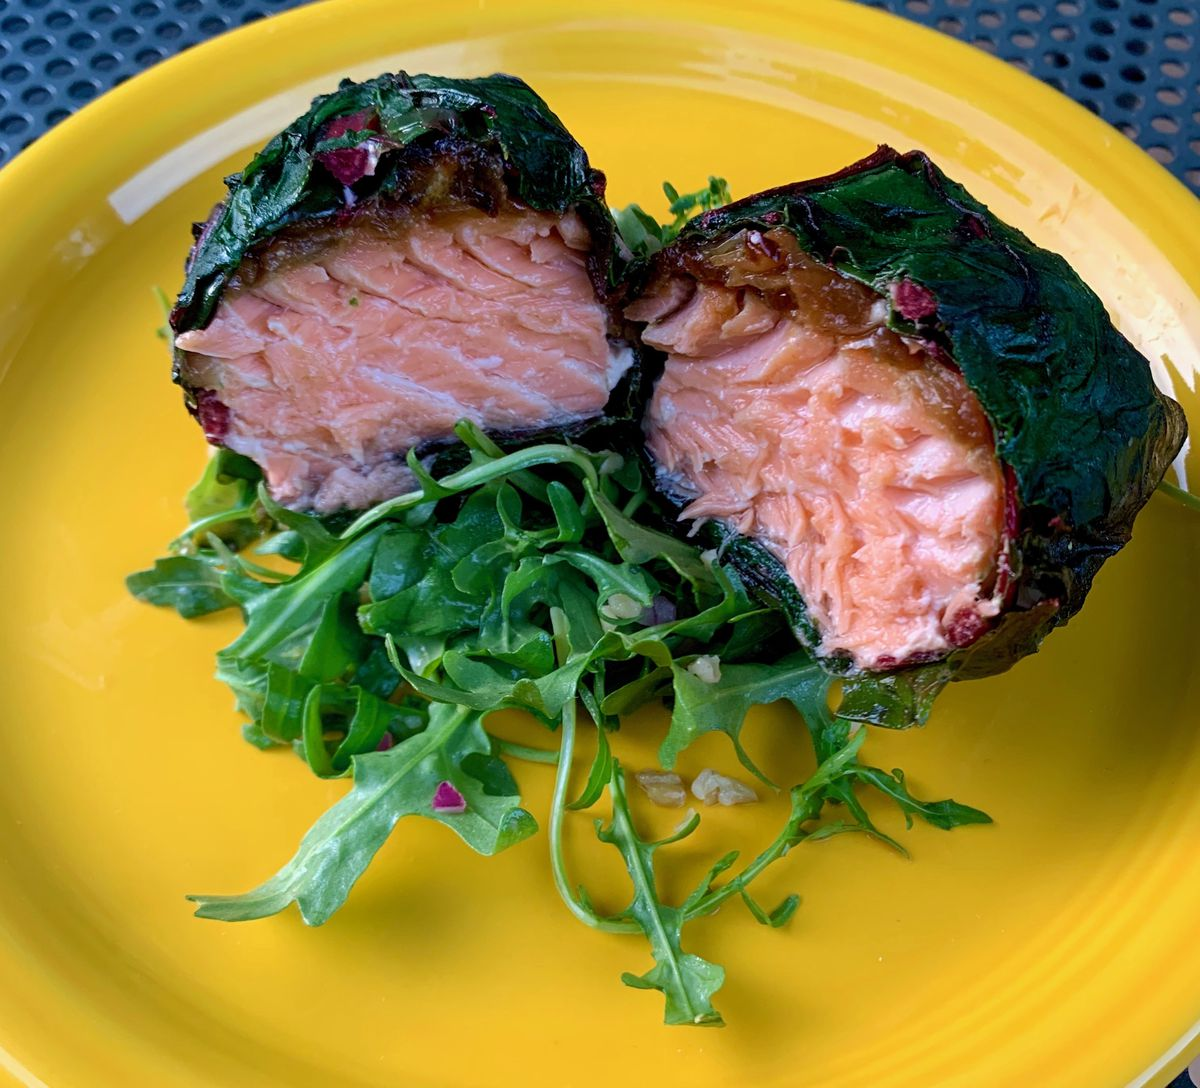 Chard wrapped salmon from Shuk